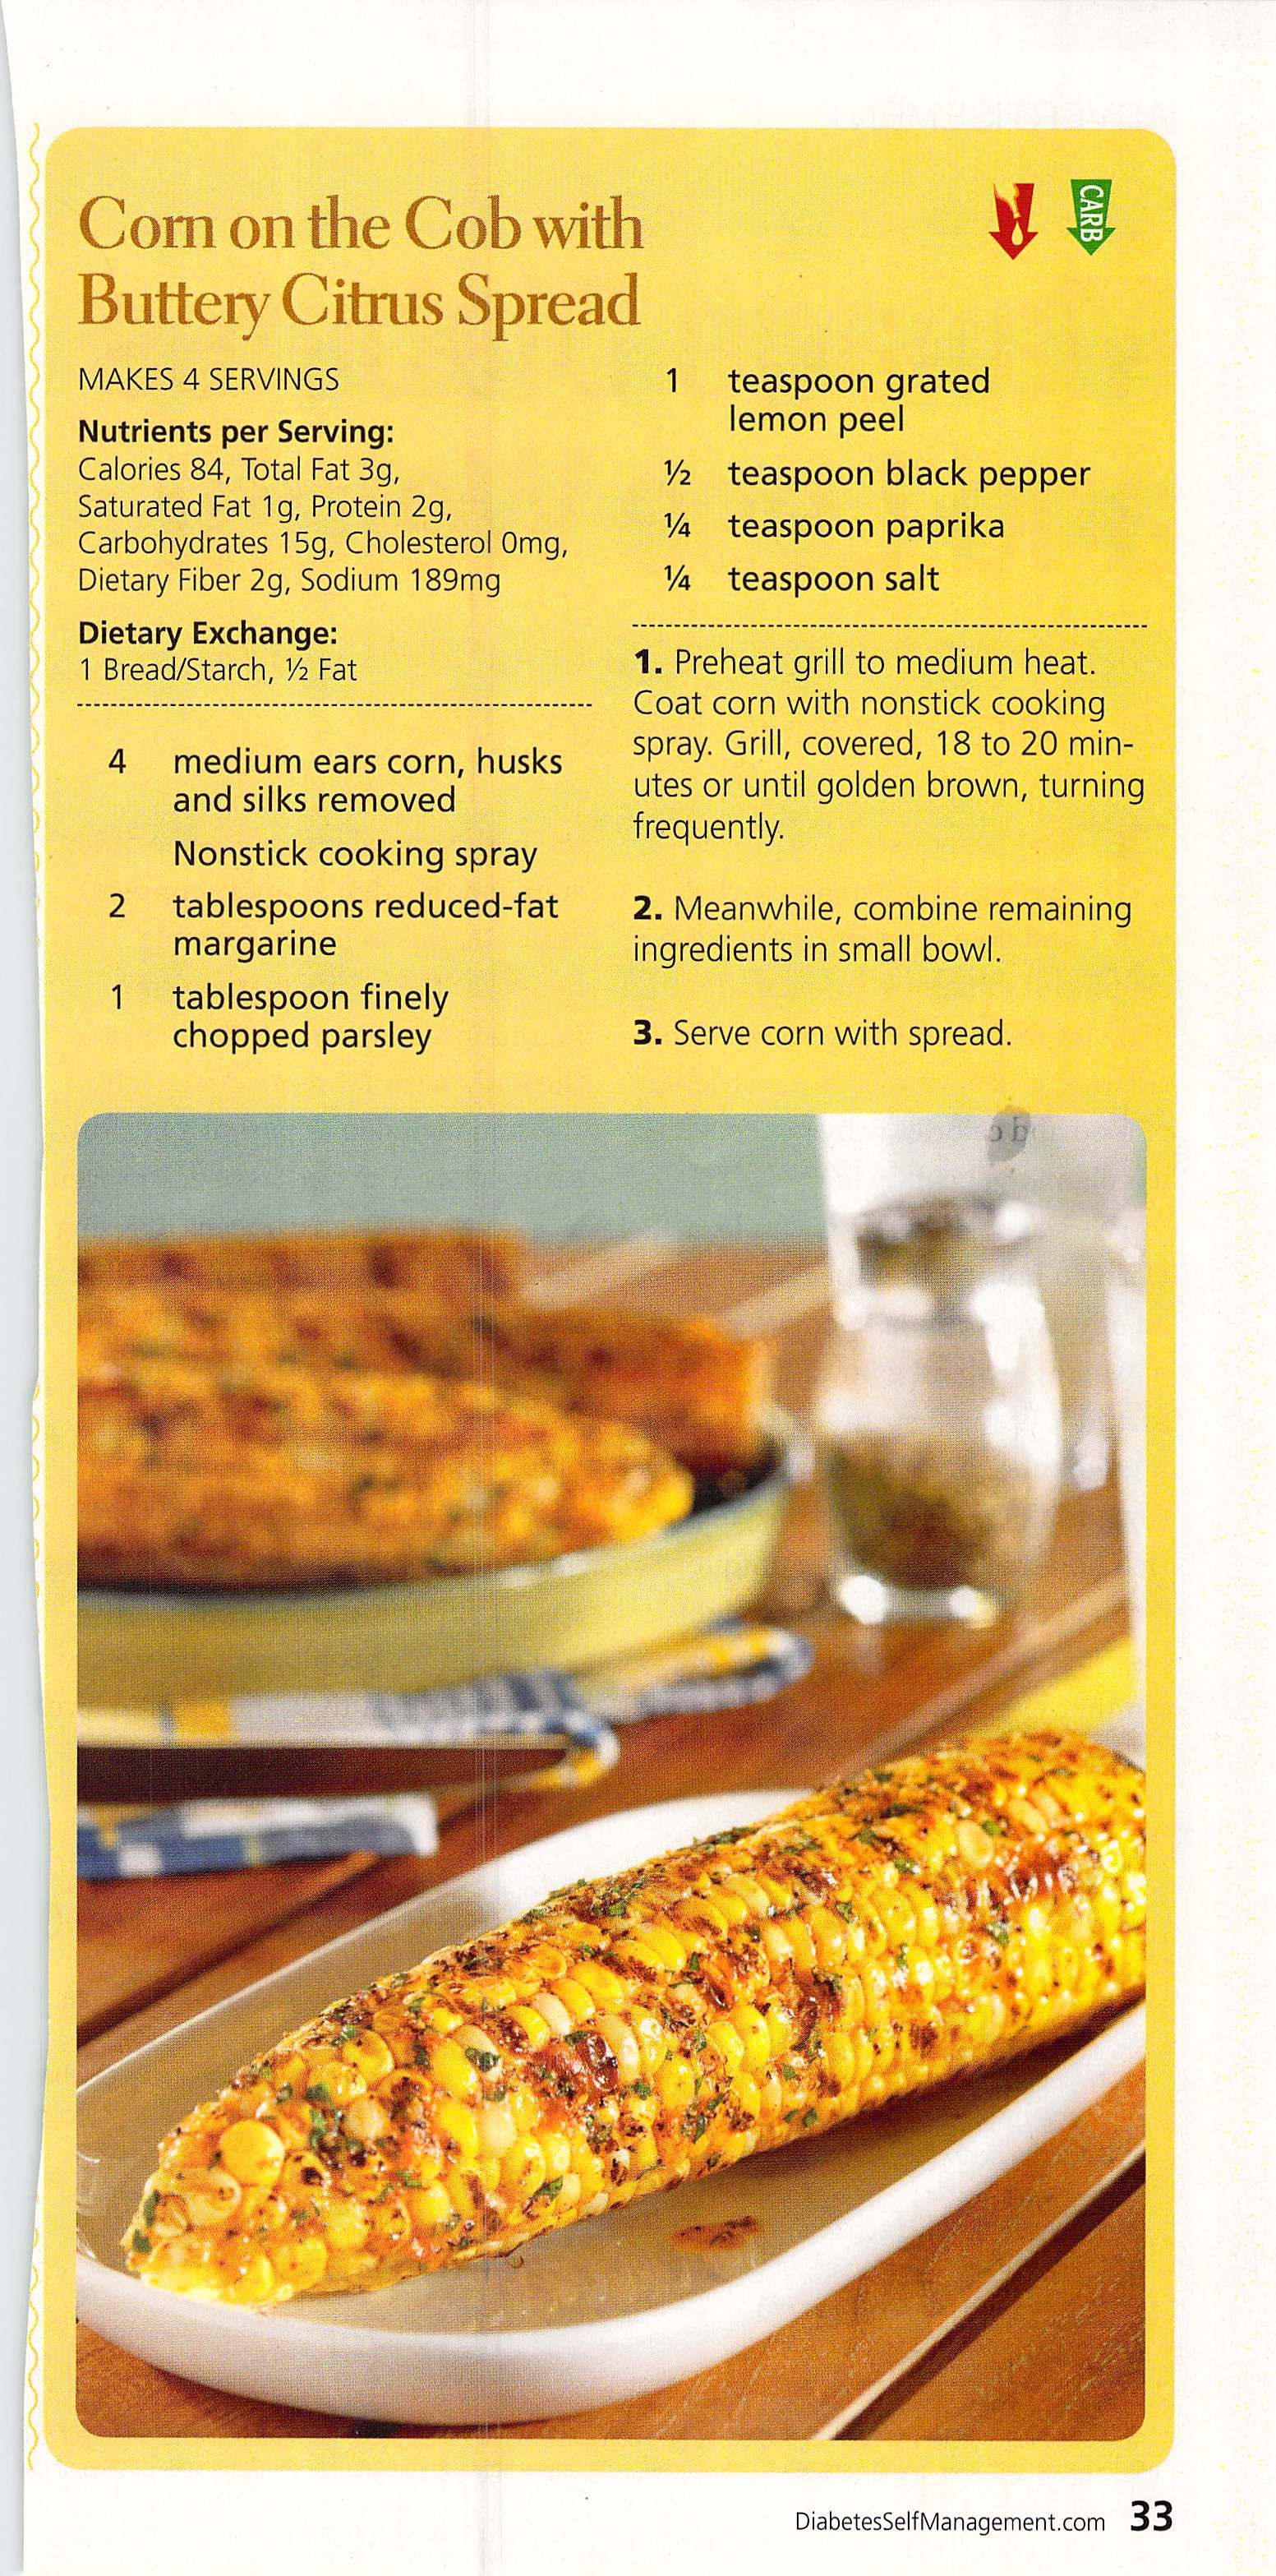 Corn on the Cob with Buttery Citrus Spread